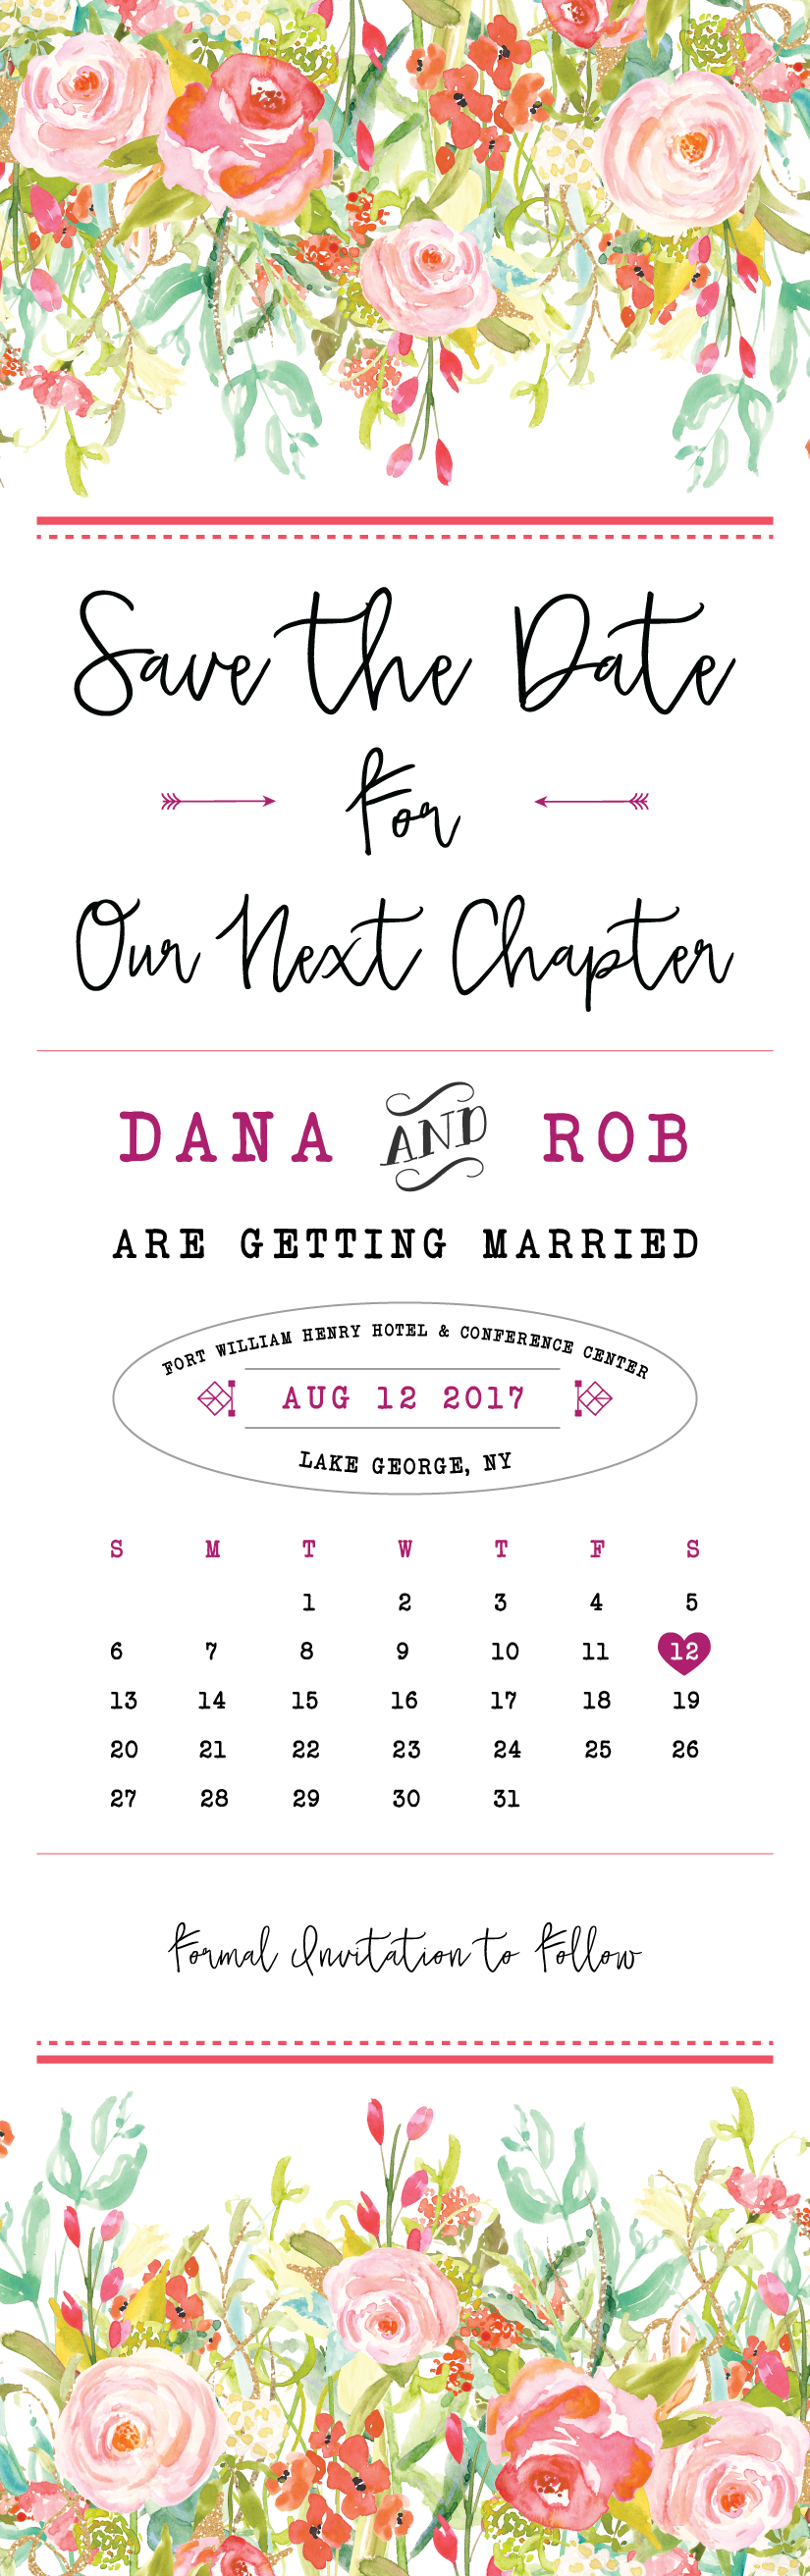 Save the Date Design: Dana & Rob